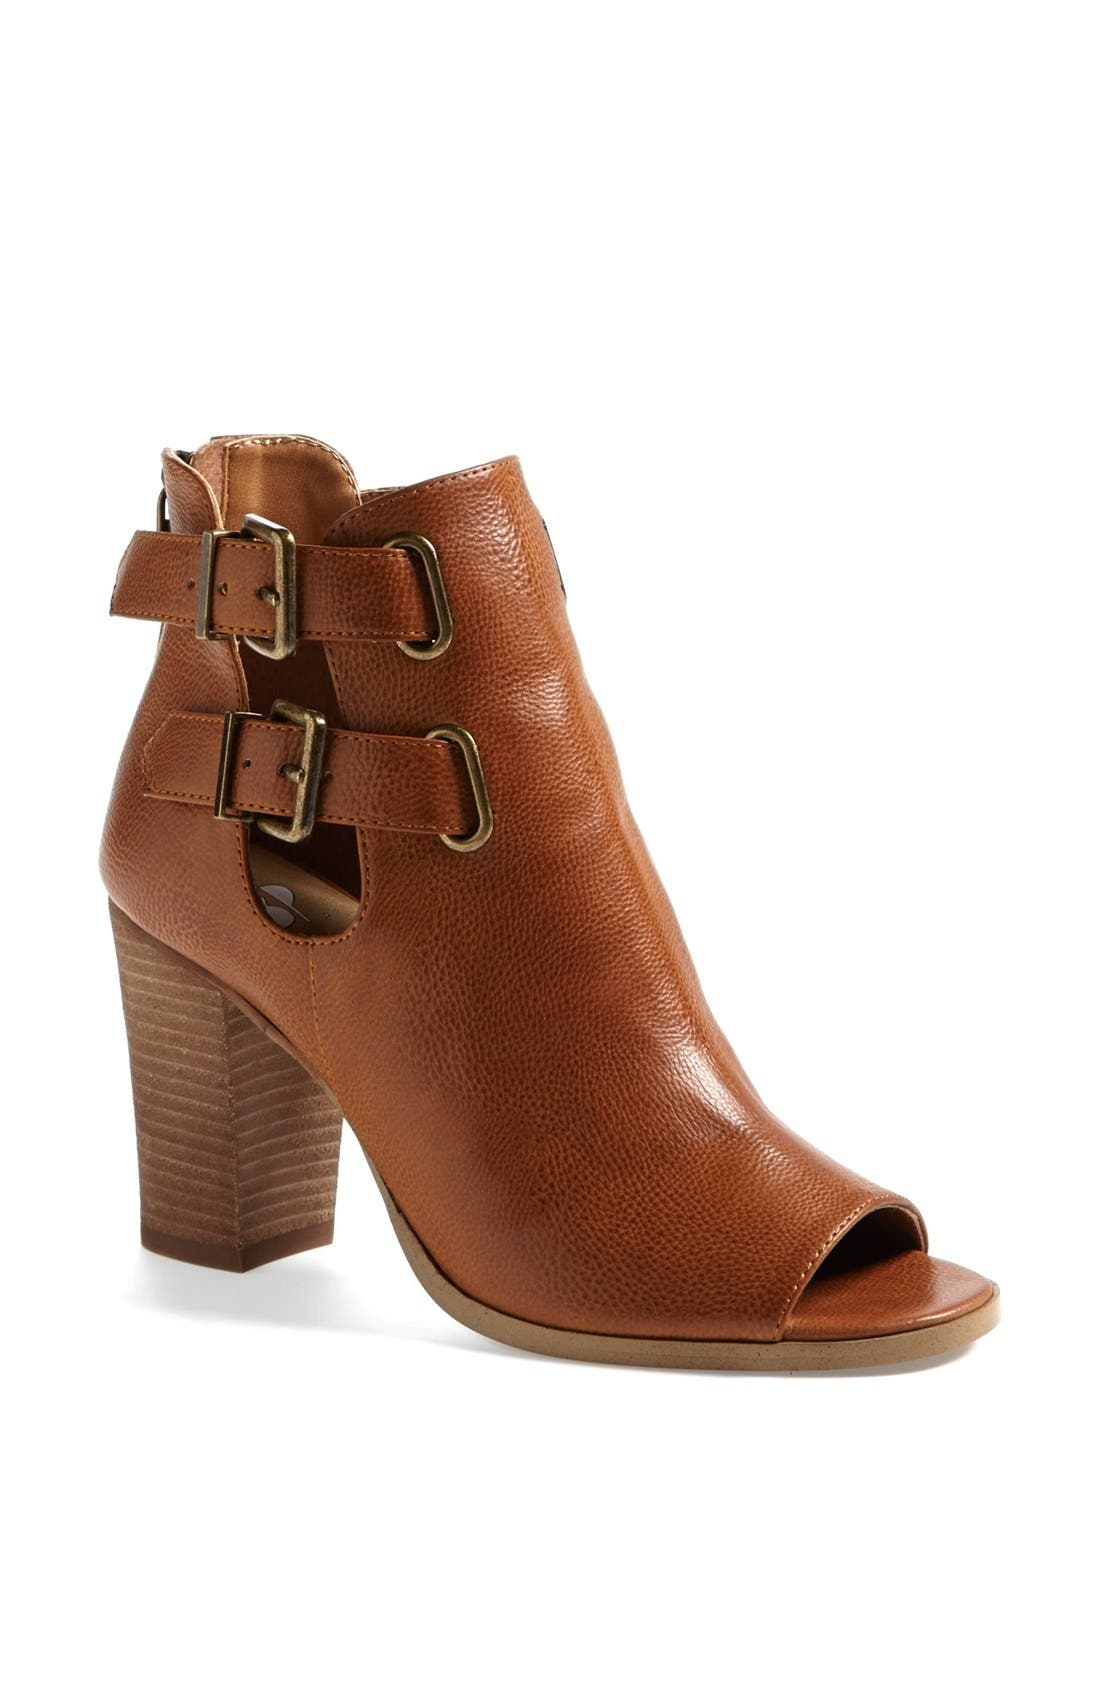 Main Image - BP. 'Flexi' Bootie